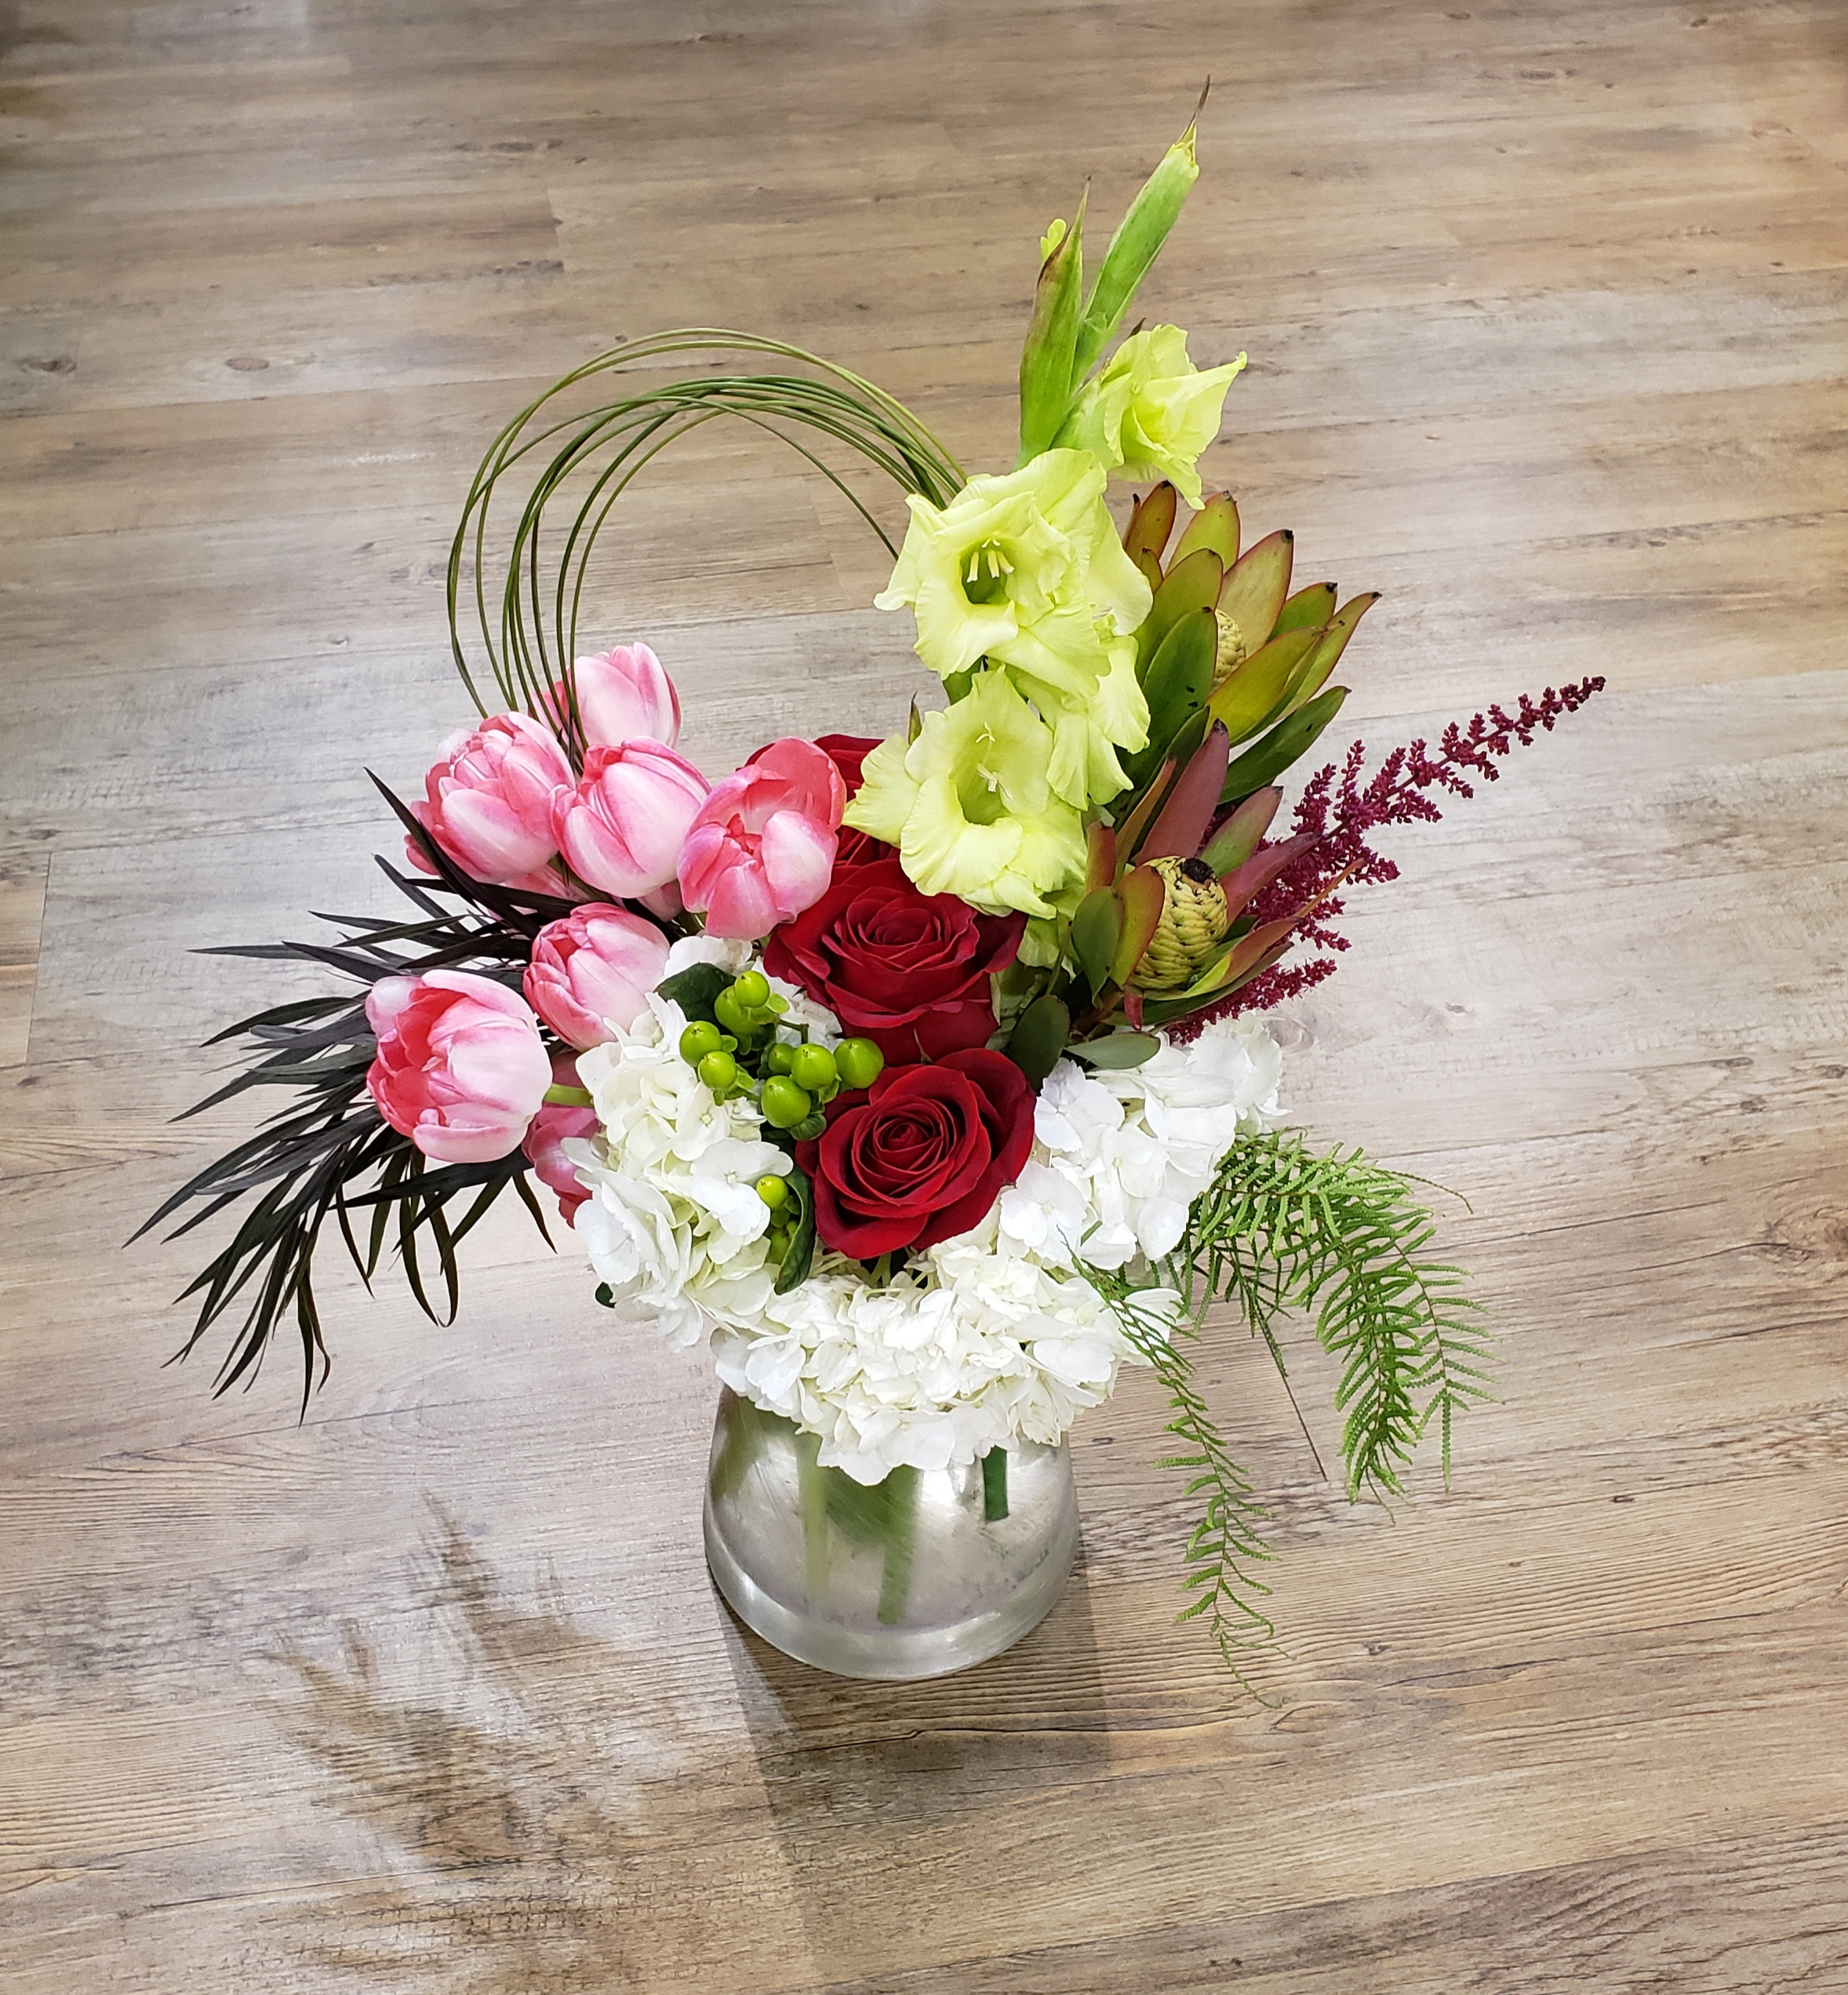 rose and tulip arrangement.jpg